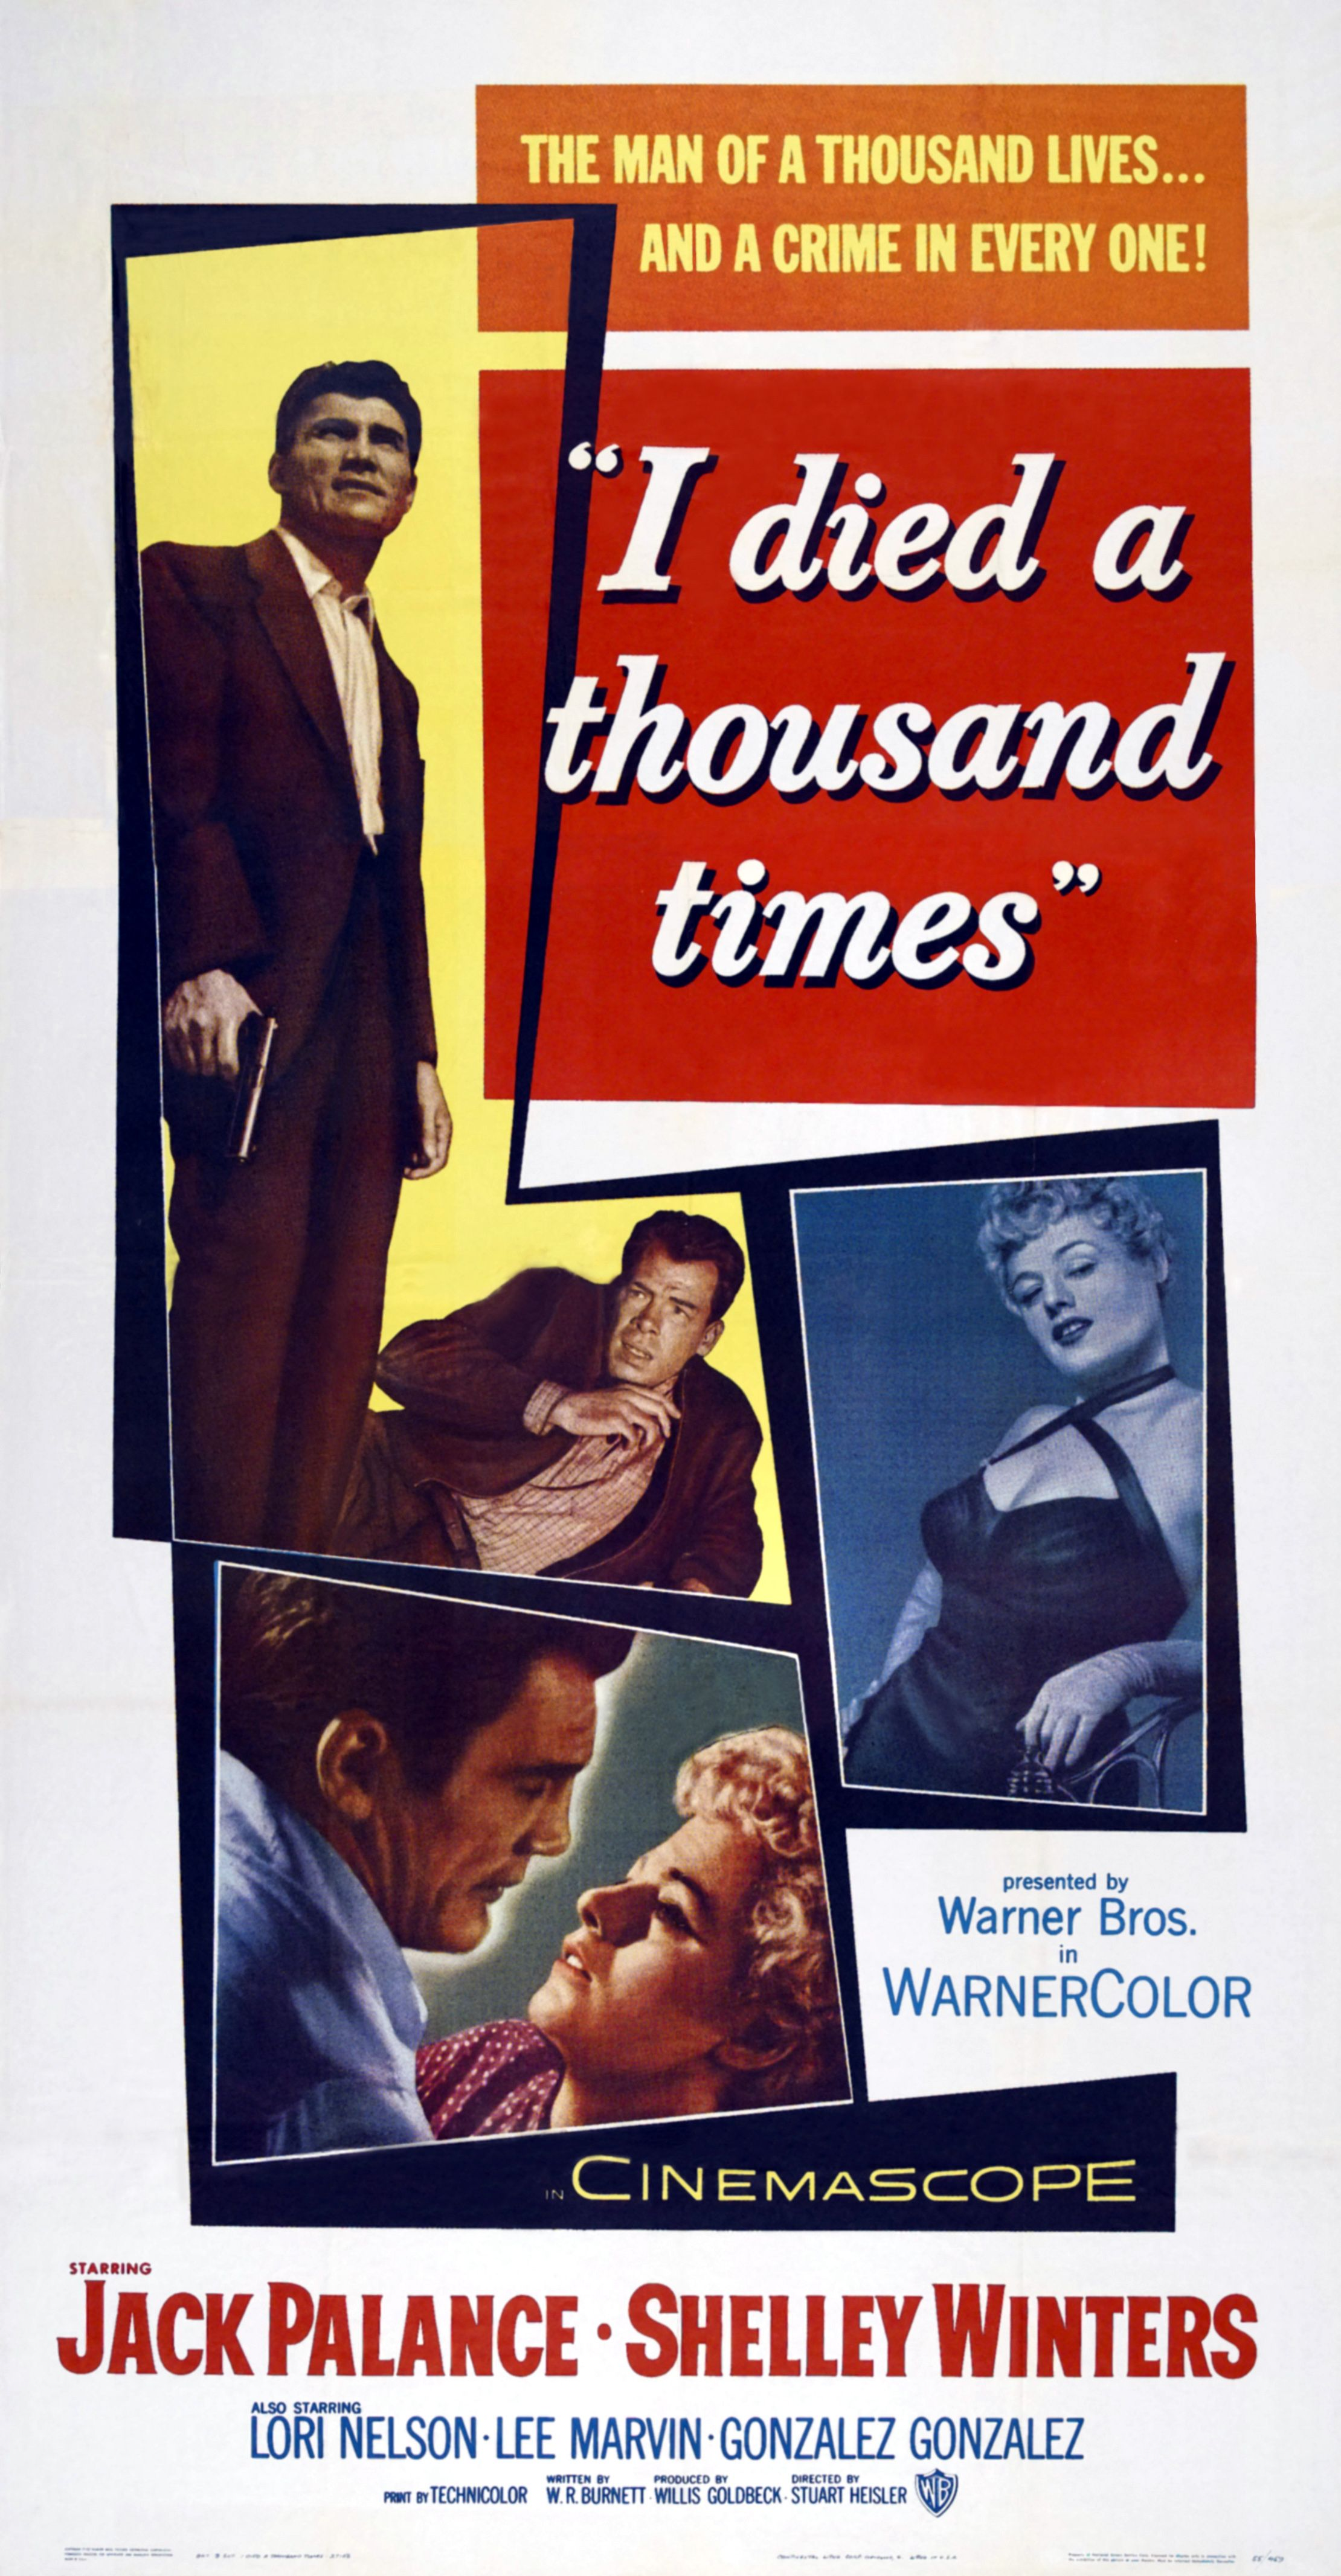 Jack Palance Filmes Simple an early jack palance thriller, now that guy had some character